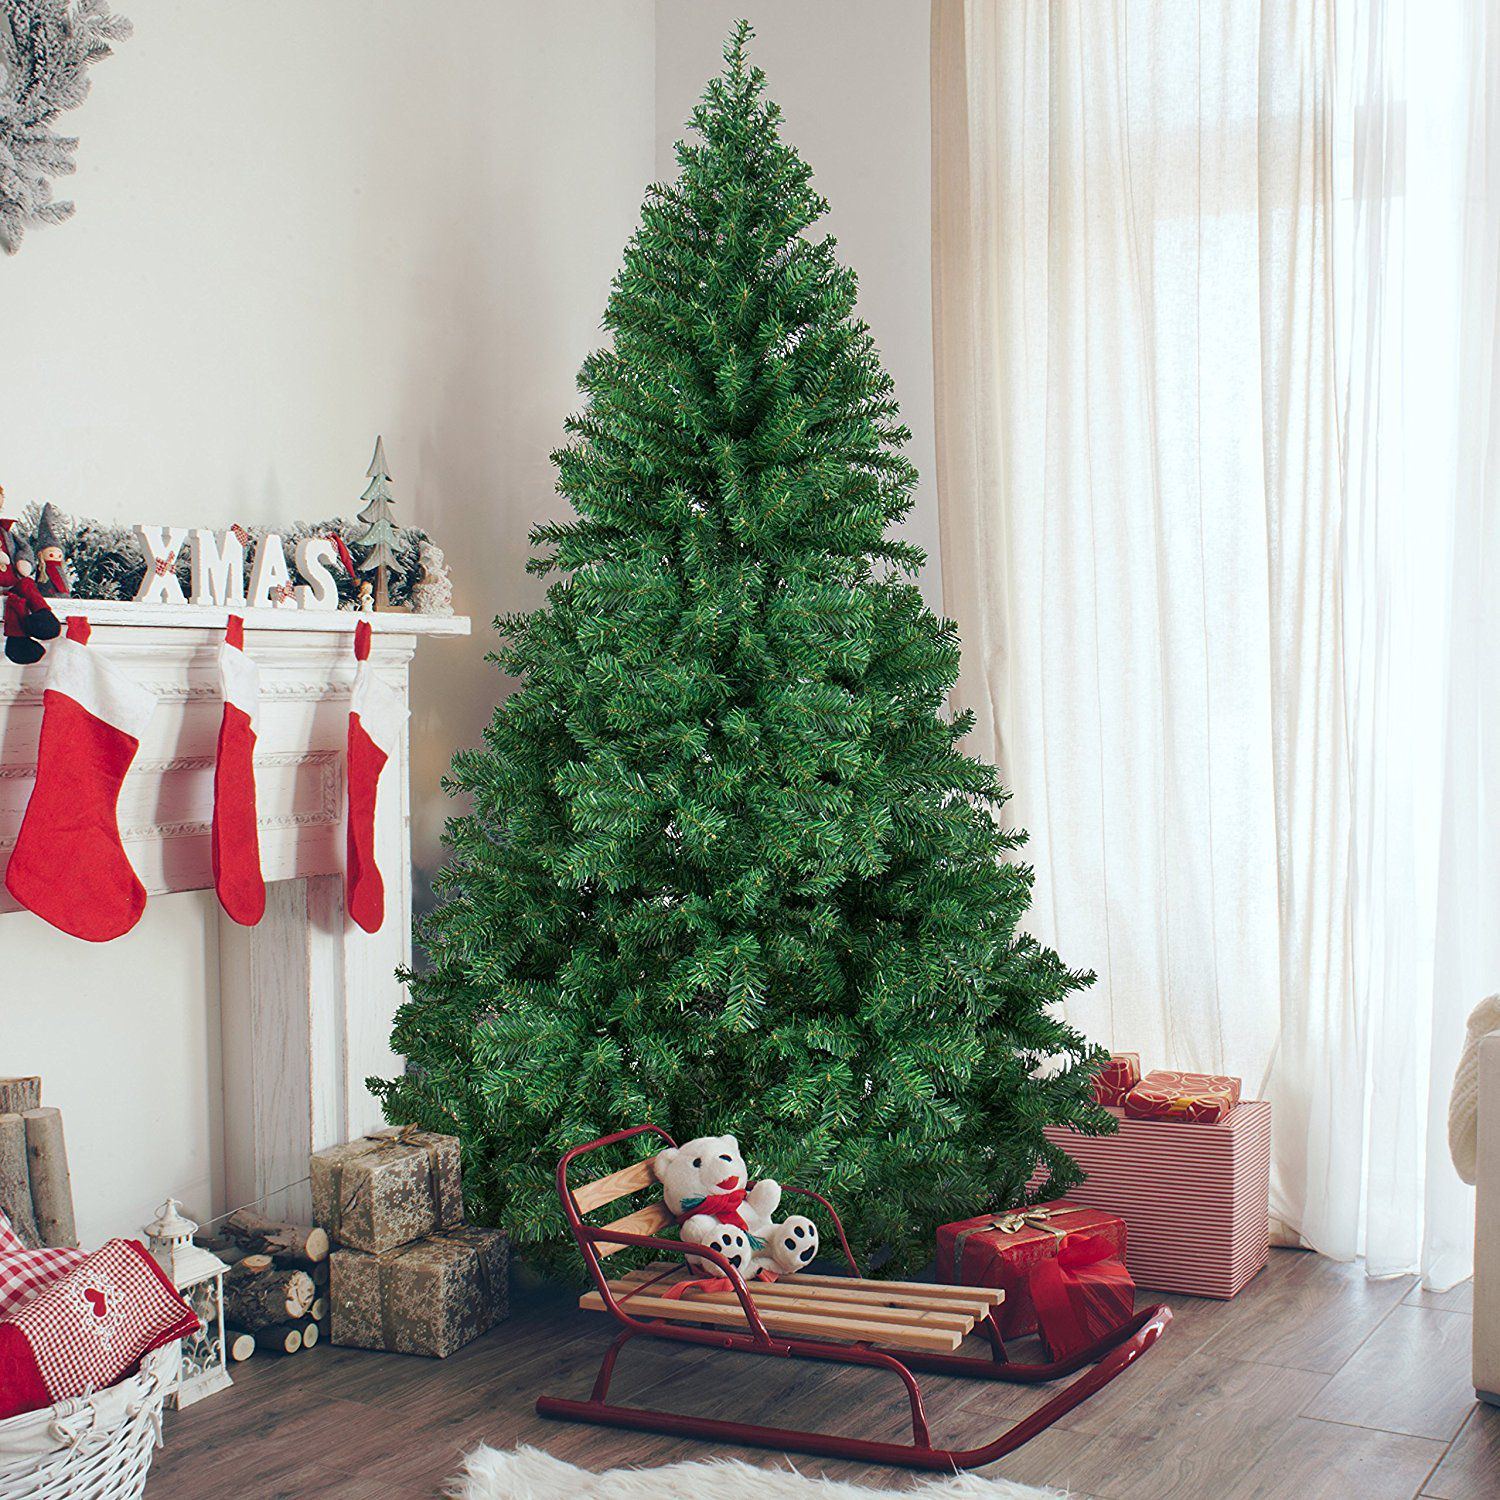 Where To Buy A Nice Artificial Christmas Tree: The 6 Best Artificial Christmas Trees To Buy In 2018